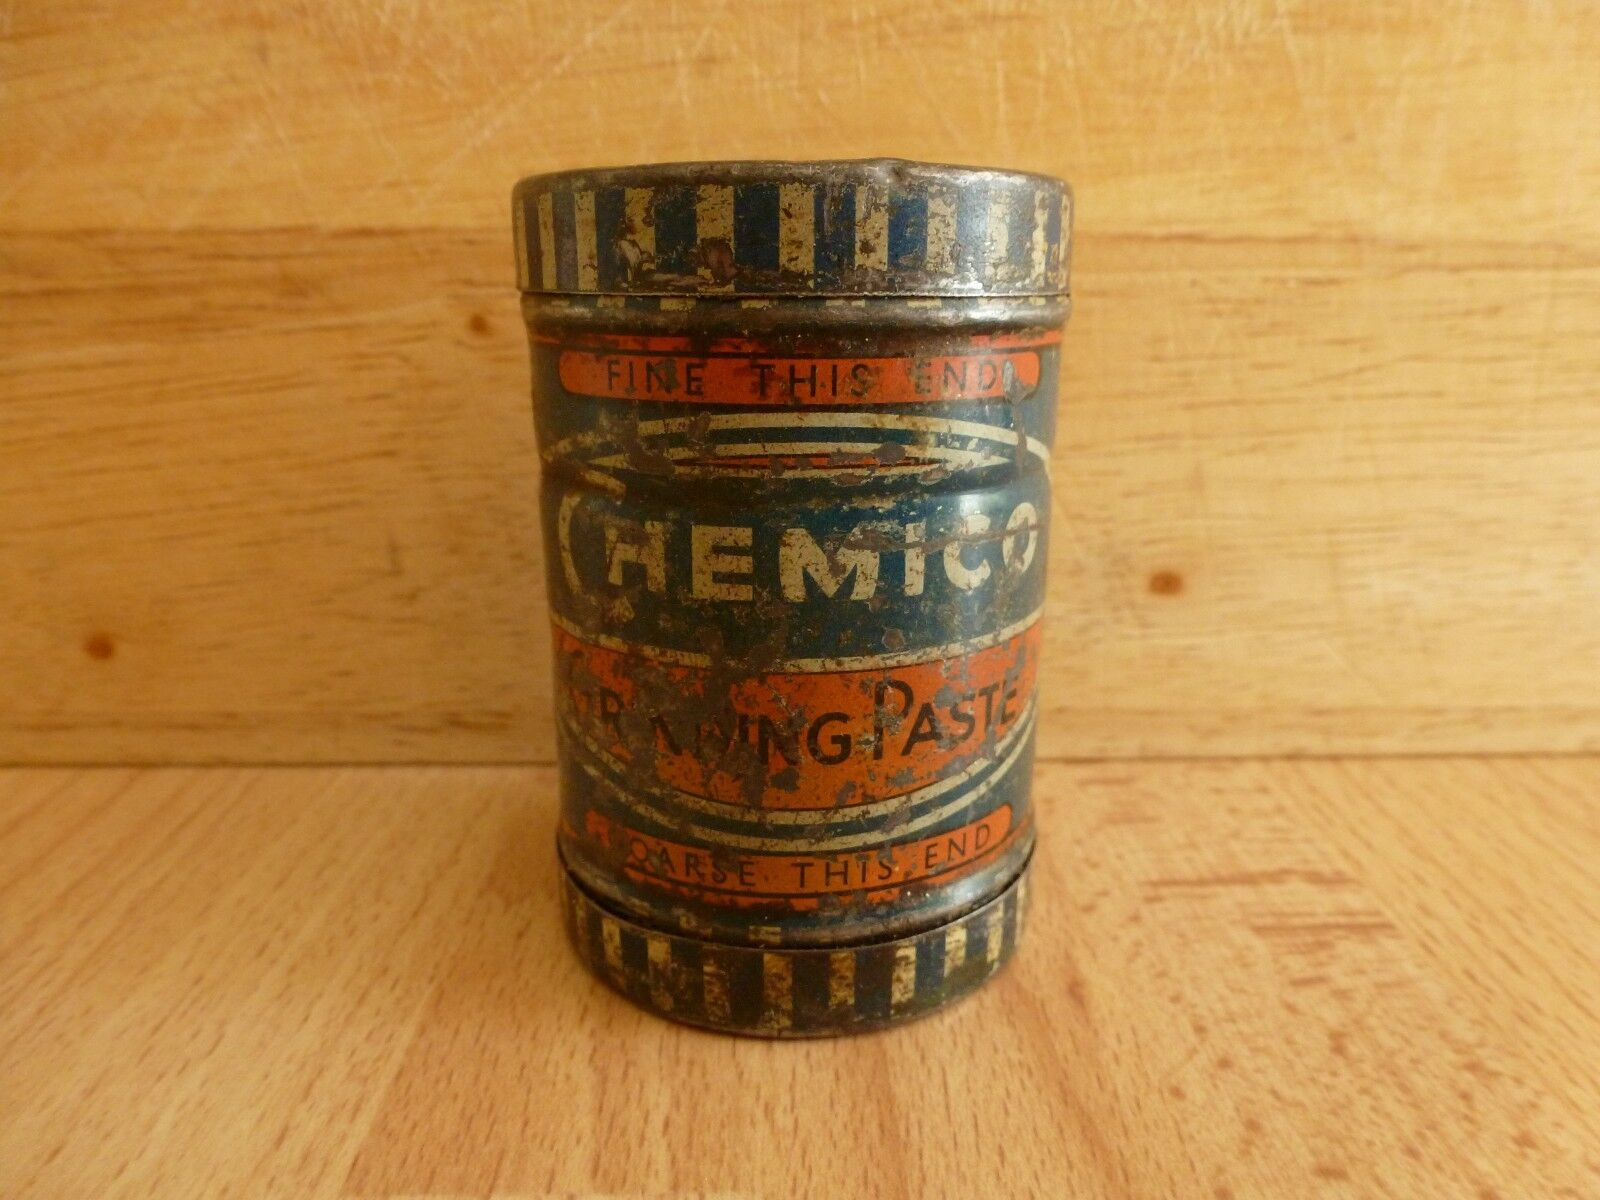 Chemico Grinding Paste Tin Fine Coarse Vintage Tin and Contents